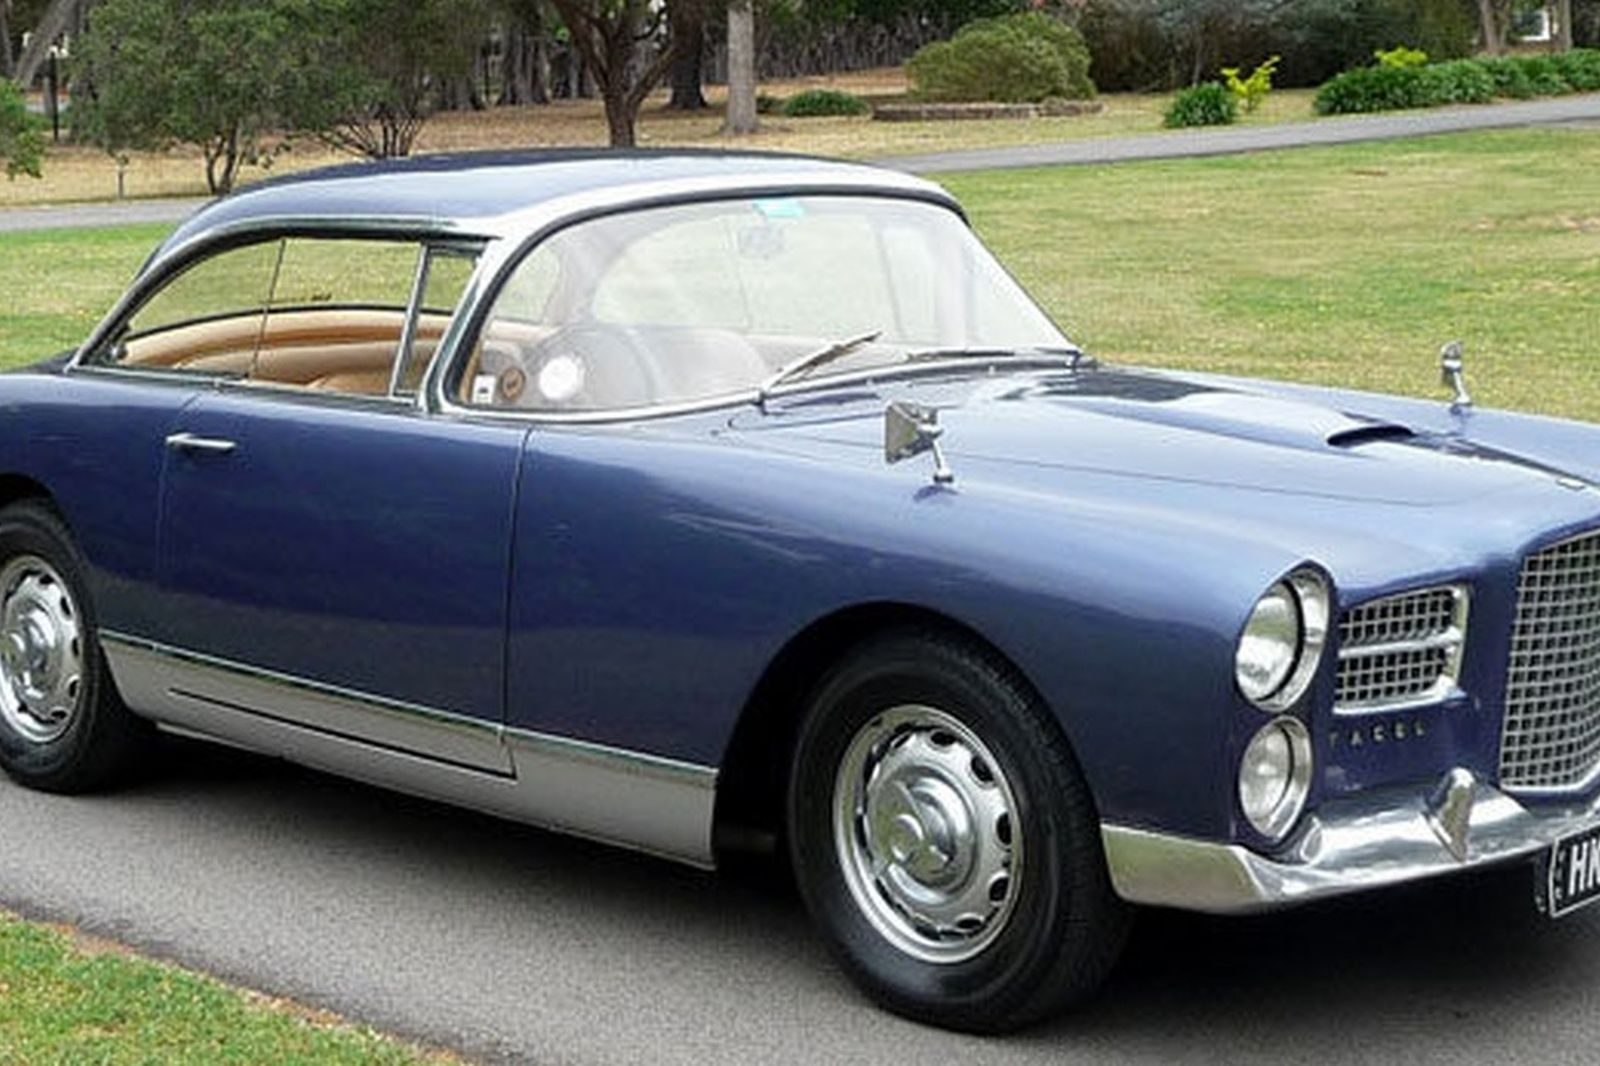 facel vega hk 500 coupe rhd auctions lot 18 shannons. Black Bedroom Furniture Sets. Home Design Ideas